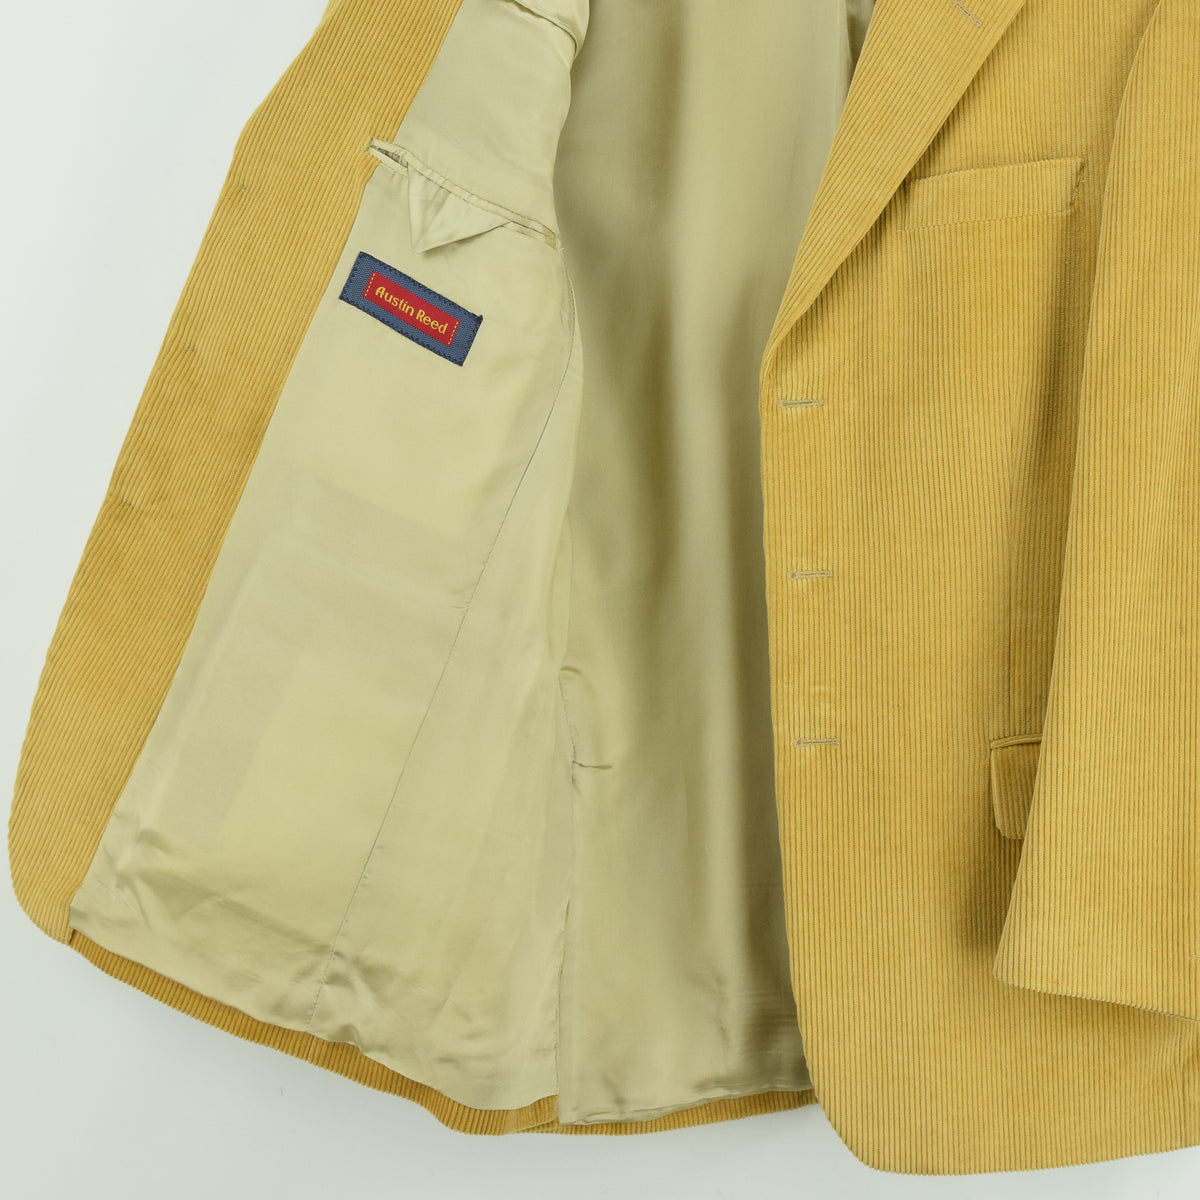 Vintage Austin Reed Sand 3 Button Cotton Corduroy Blazer Jacket 40 Reg lining internal pocket label